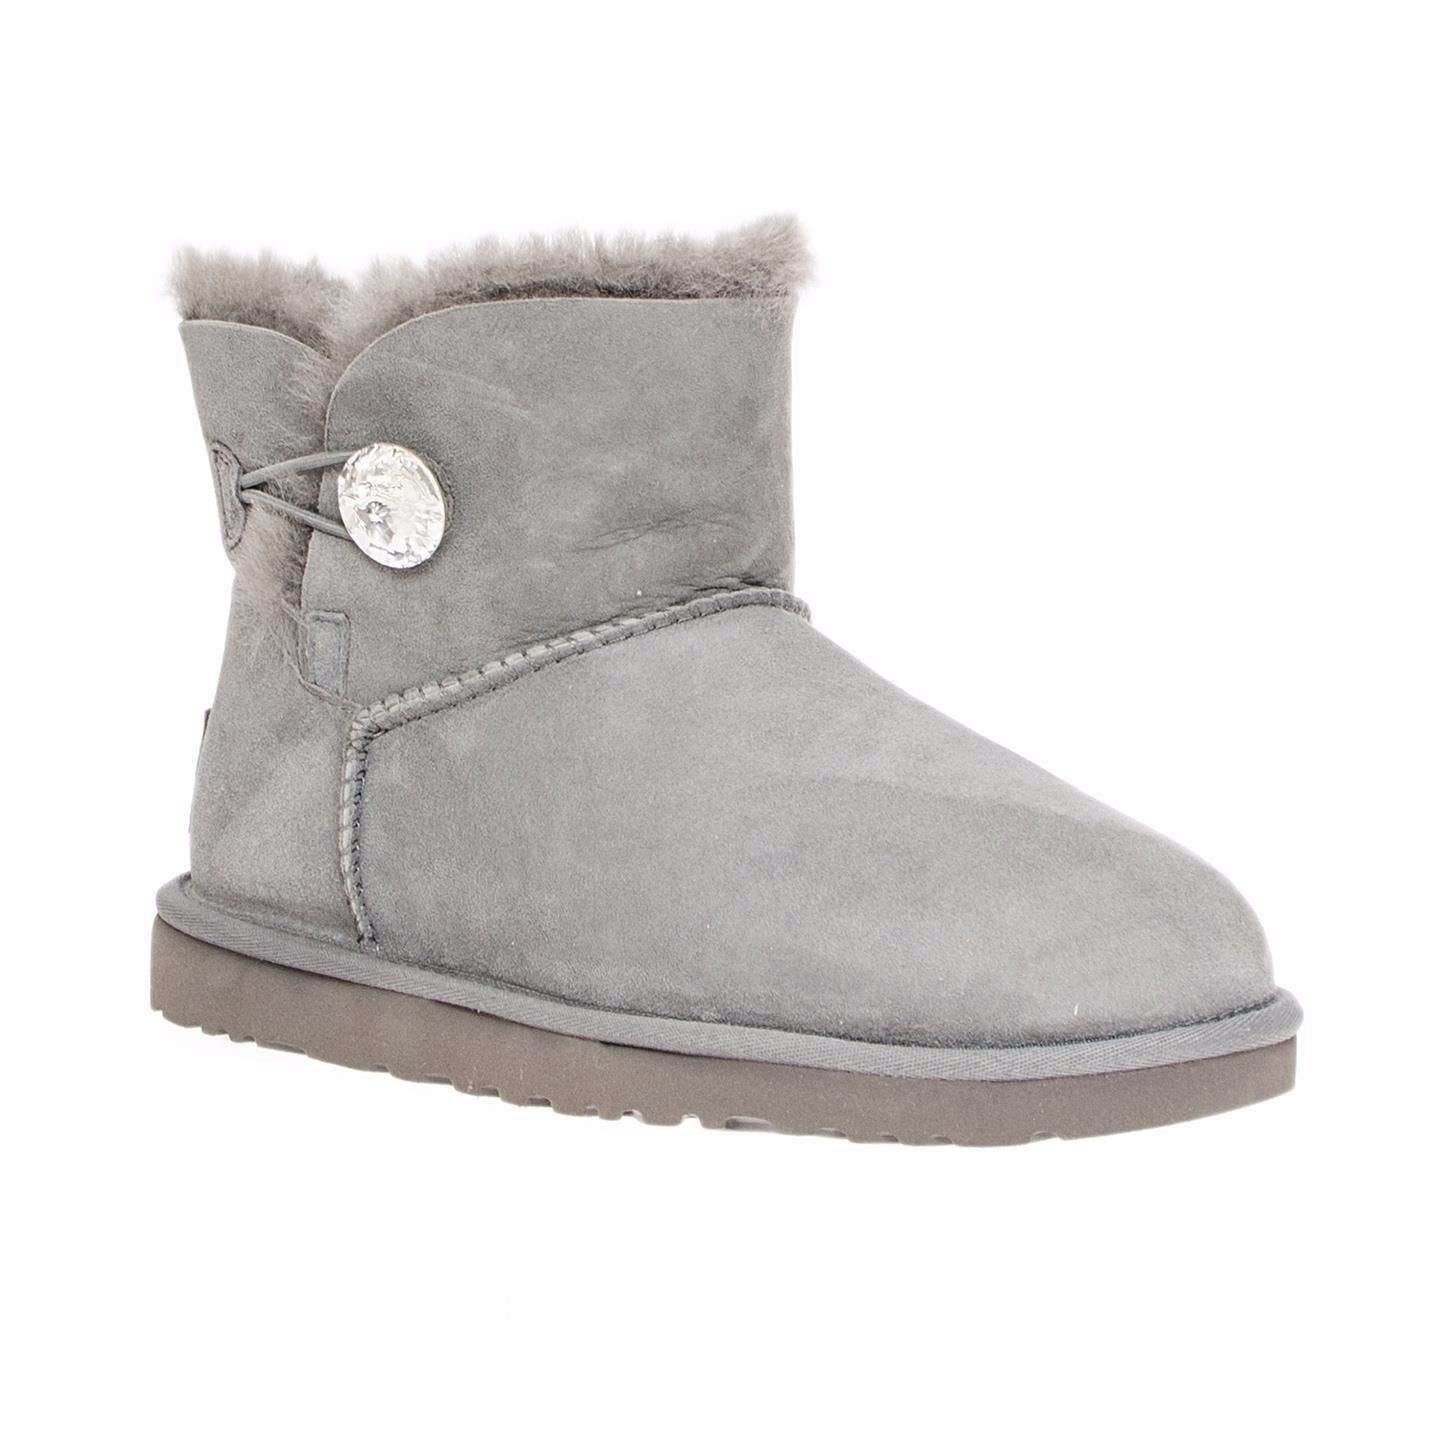 7979c8ddbe2 UGG Mini Bailey Button Bling Grey Boots